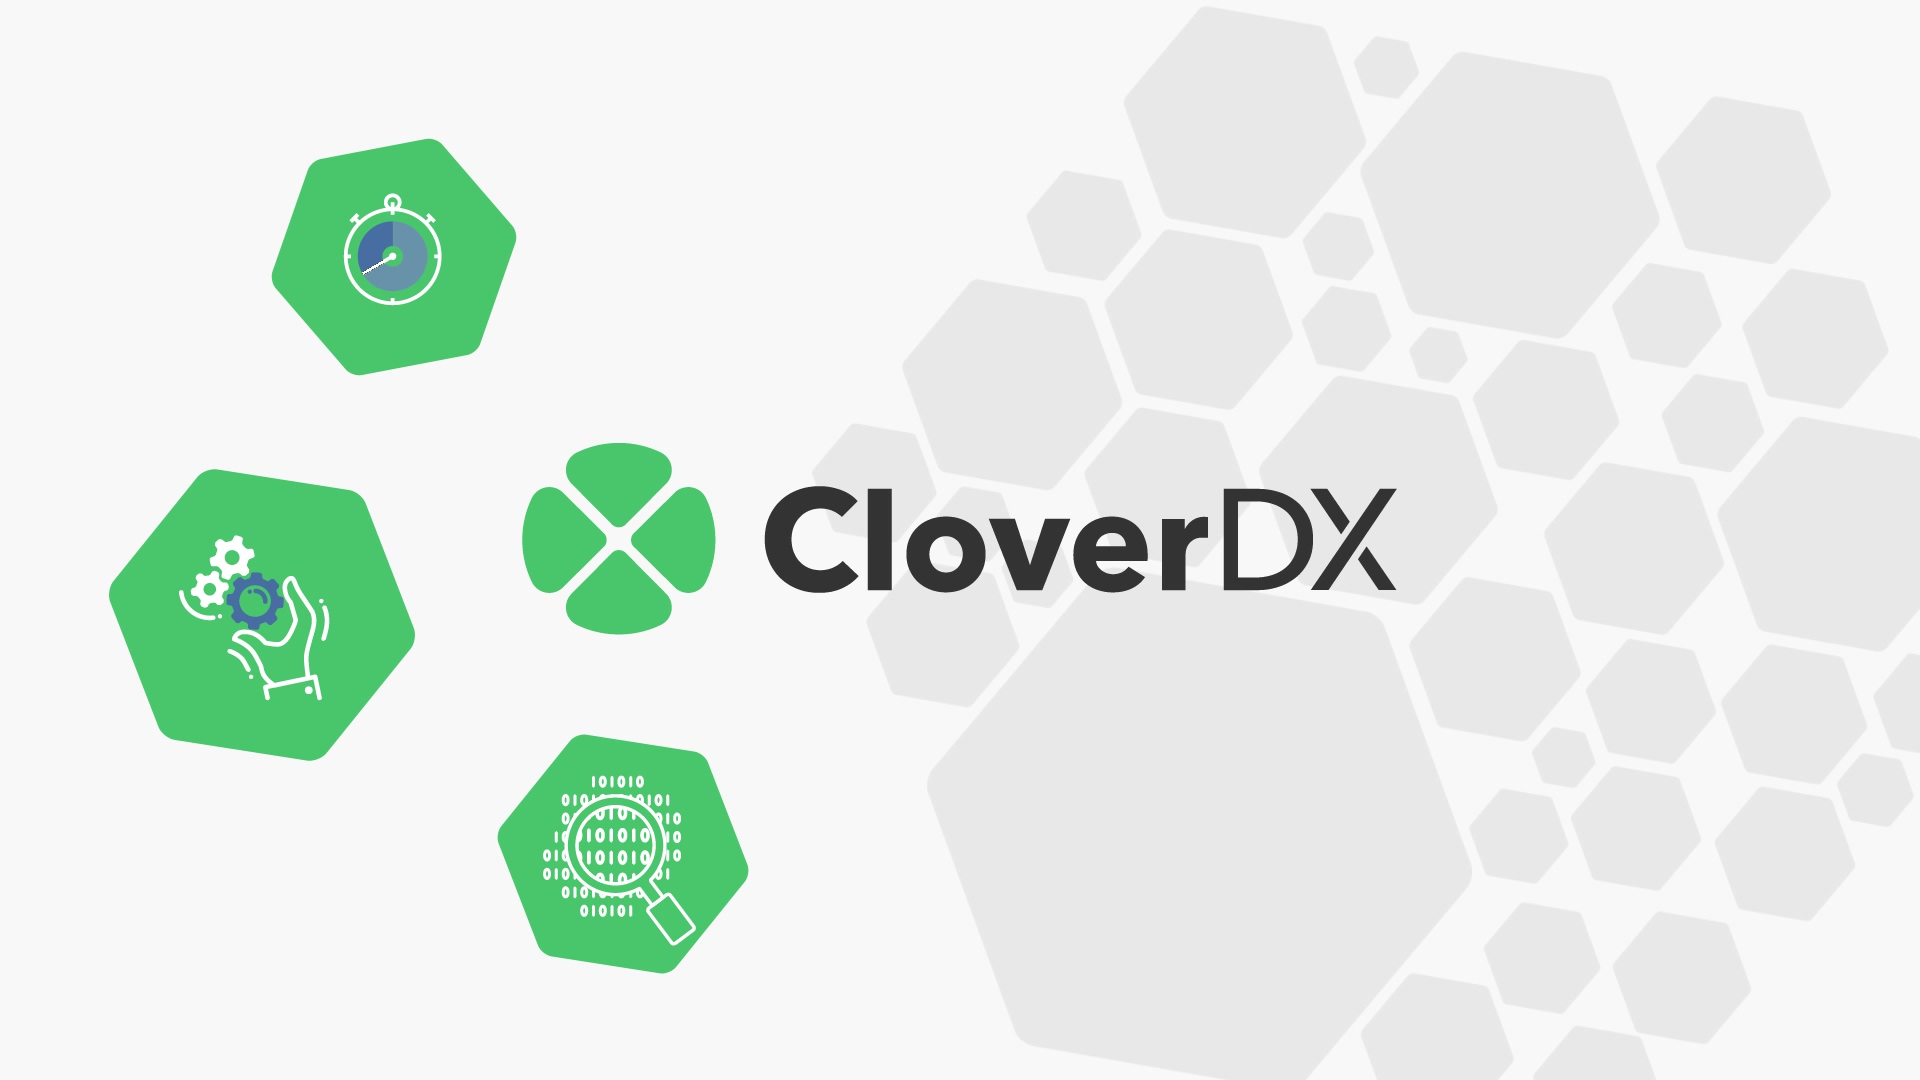 FINAL - Clover DX Product Animation - 03-08-18 -1725